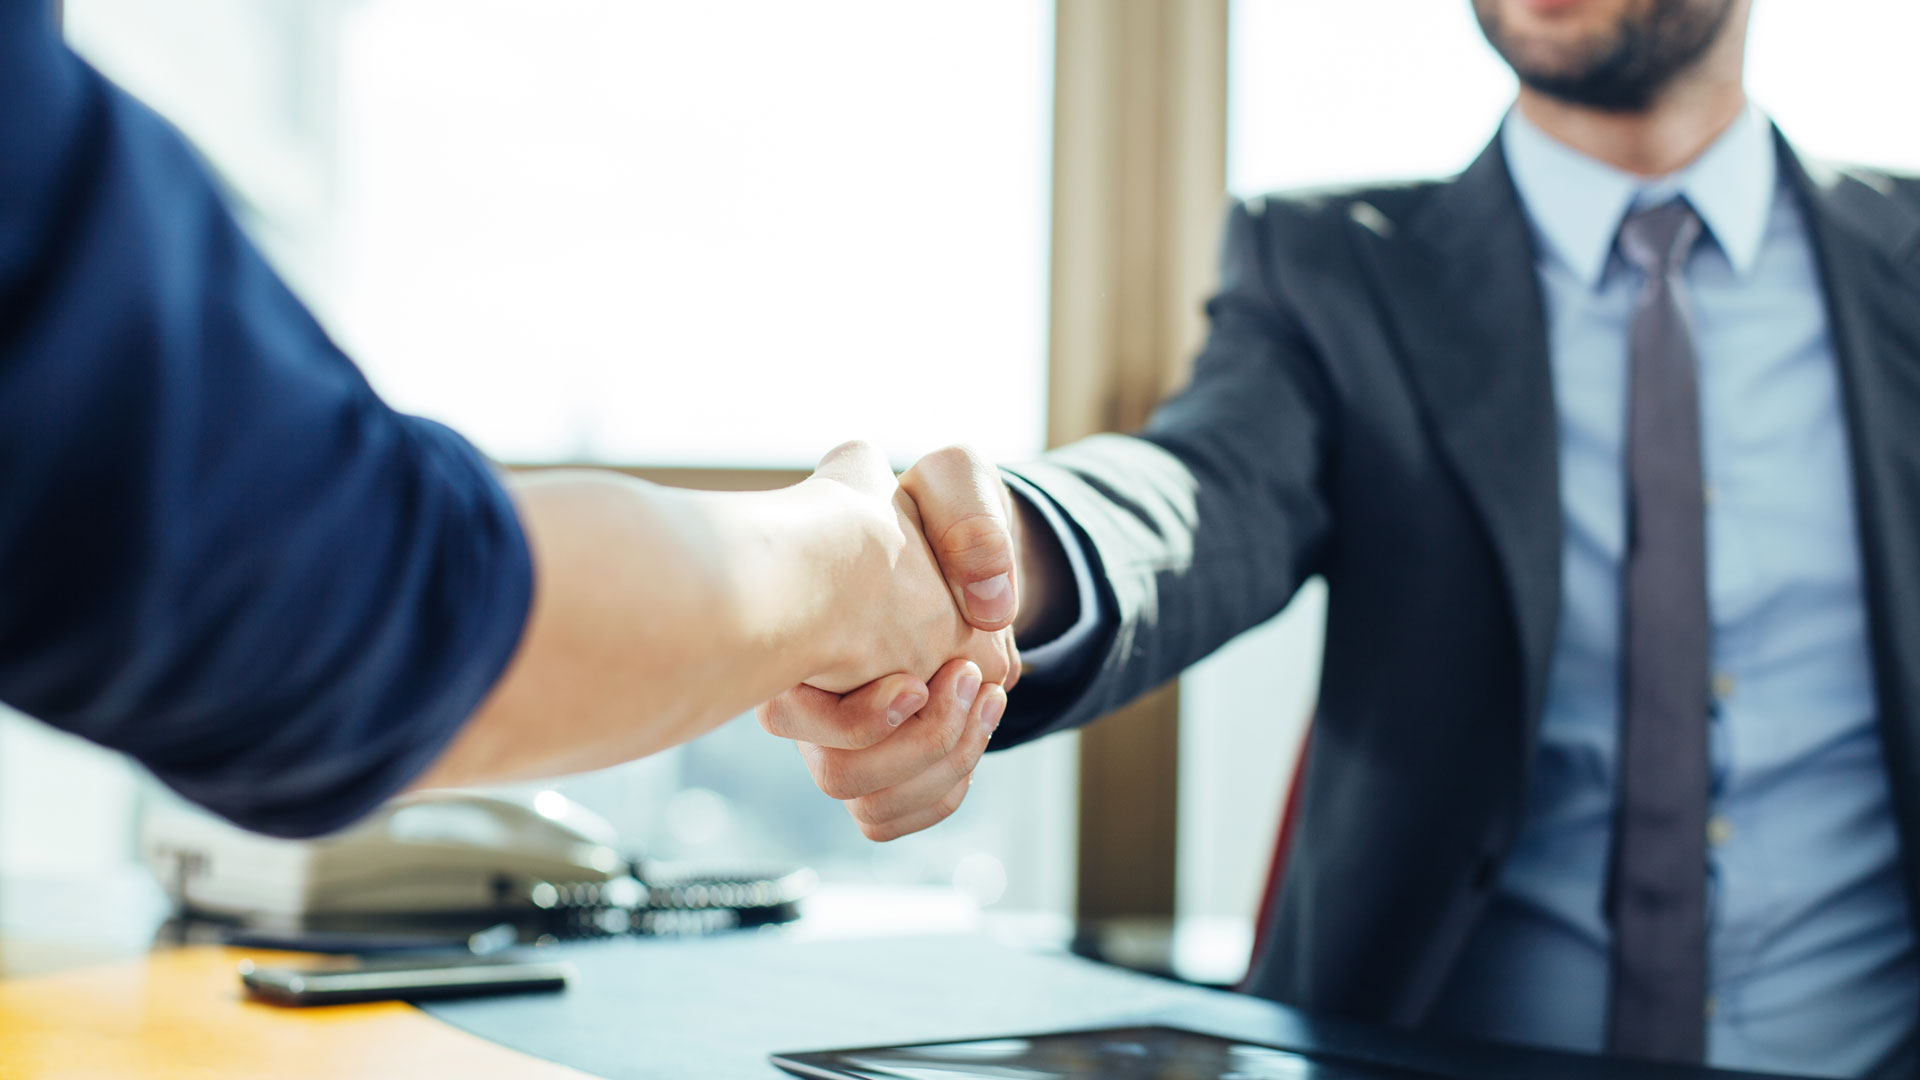 How Business Can Build Trust in Their Customers?